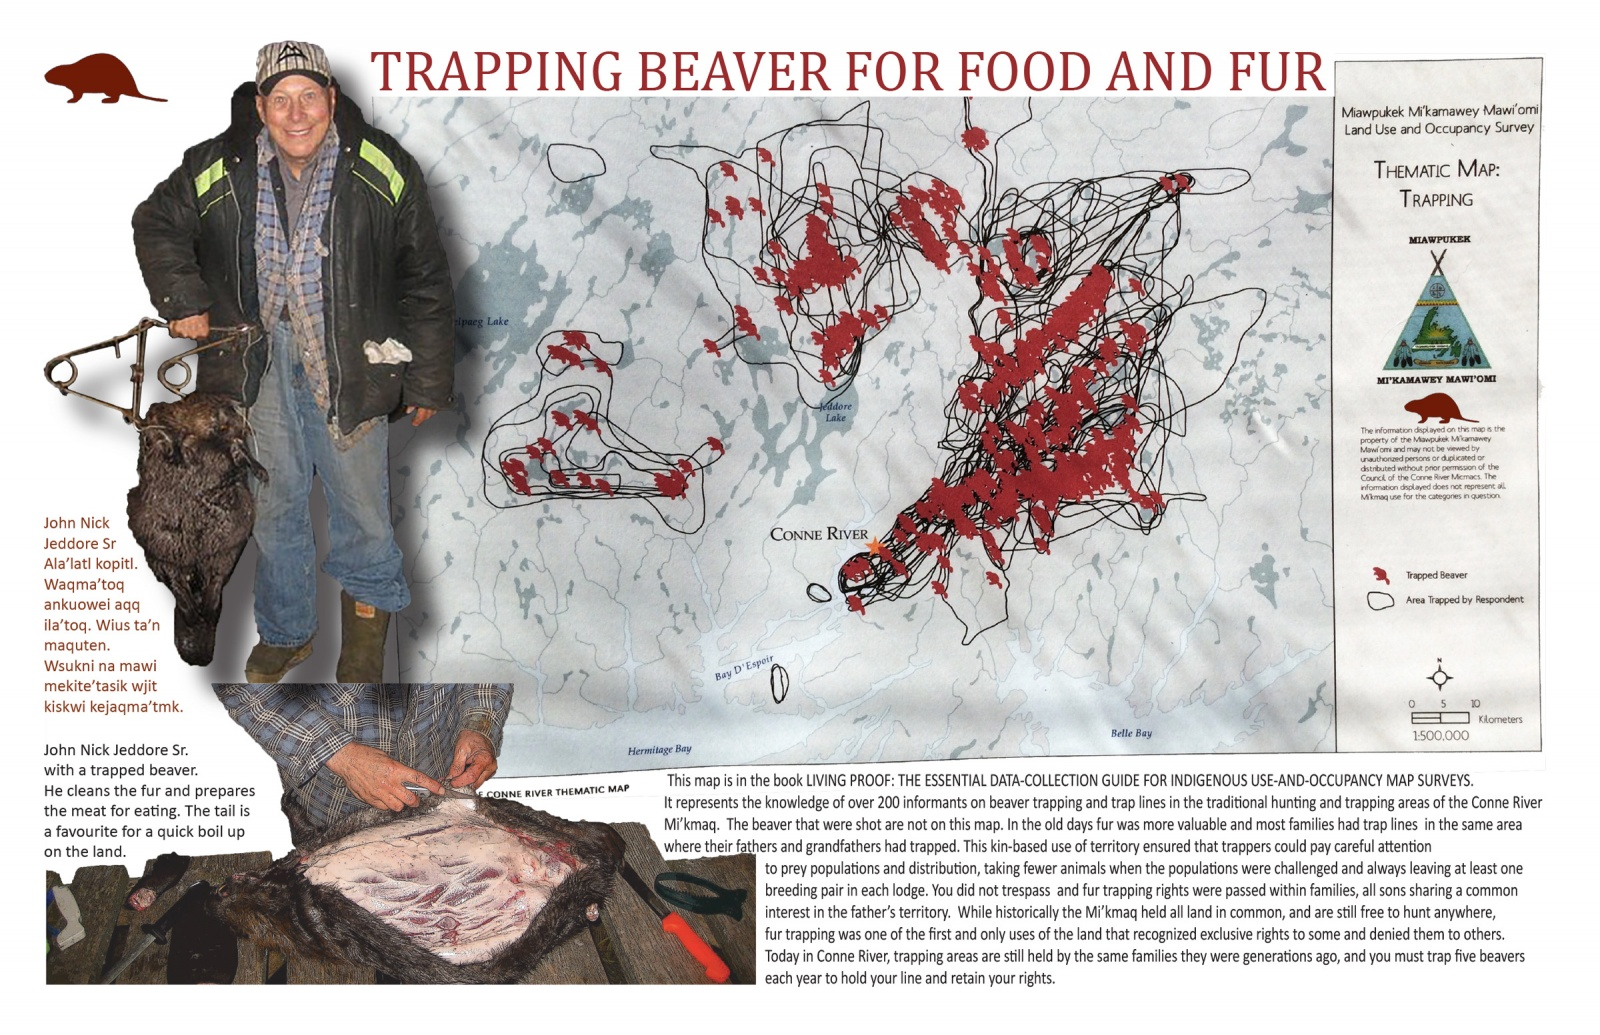 Trapping Beaver for Food and Fur